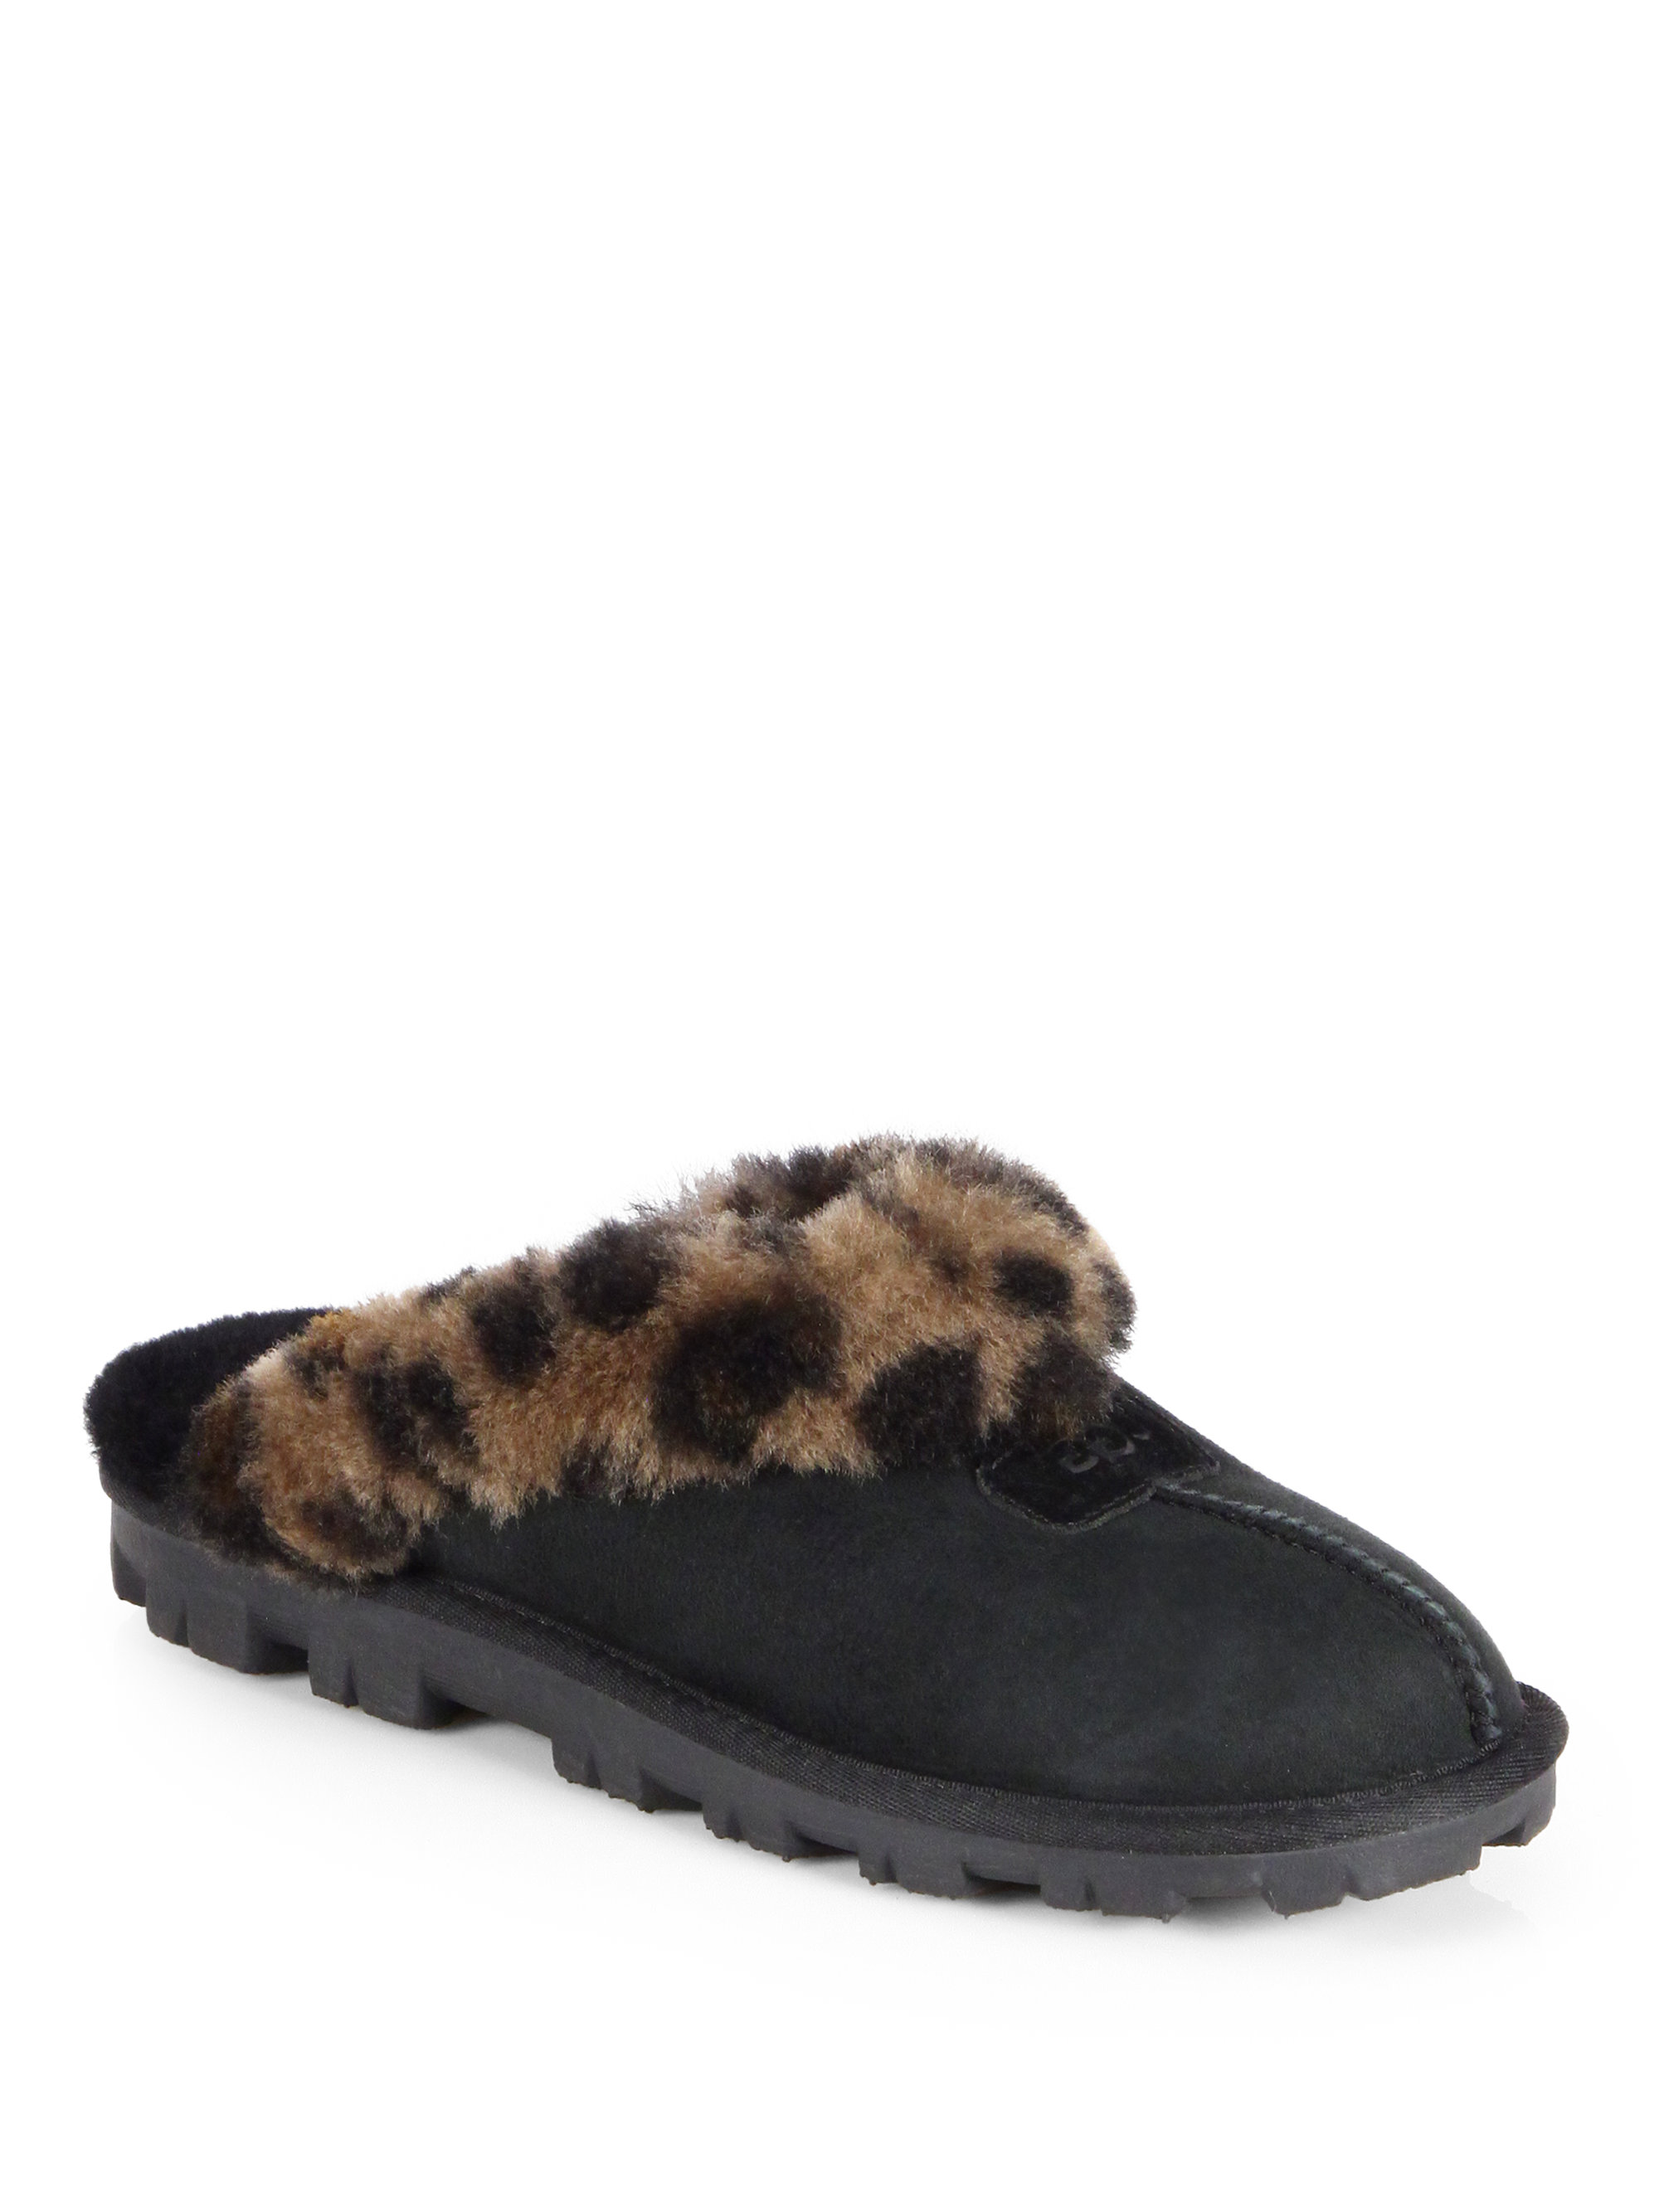 abff5dd2702 Ugg Australia Coquette Leopard Slippers - cheap watches mgc-gas.com